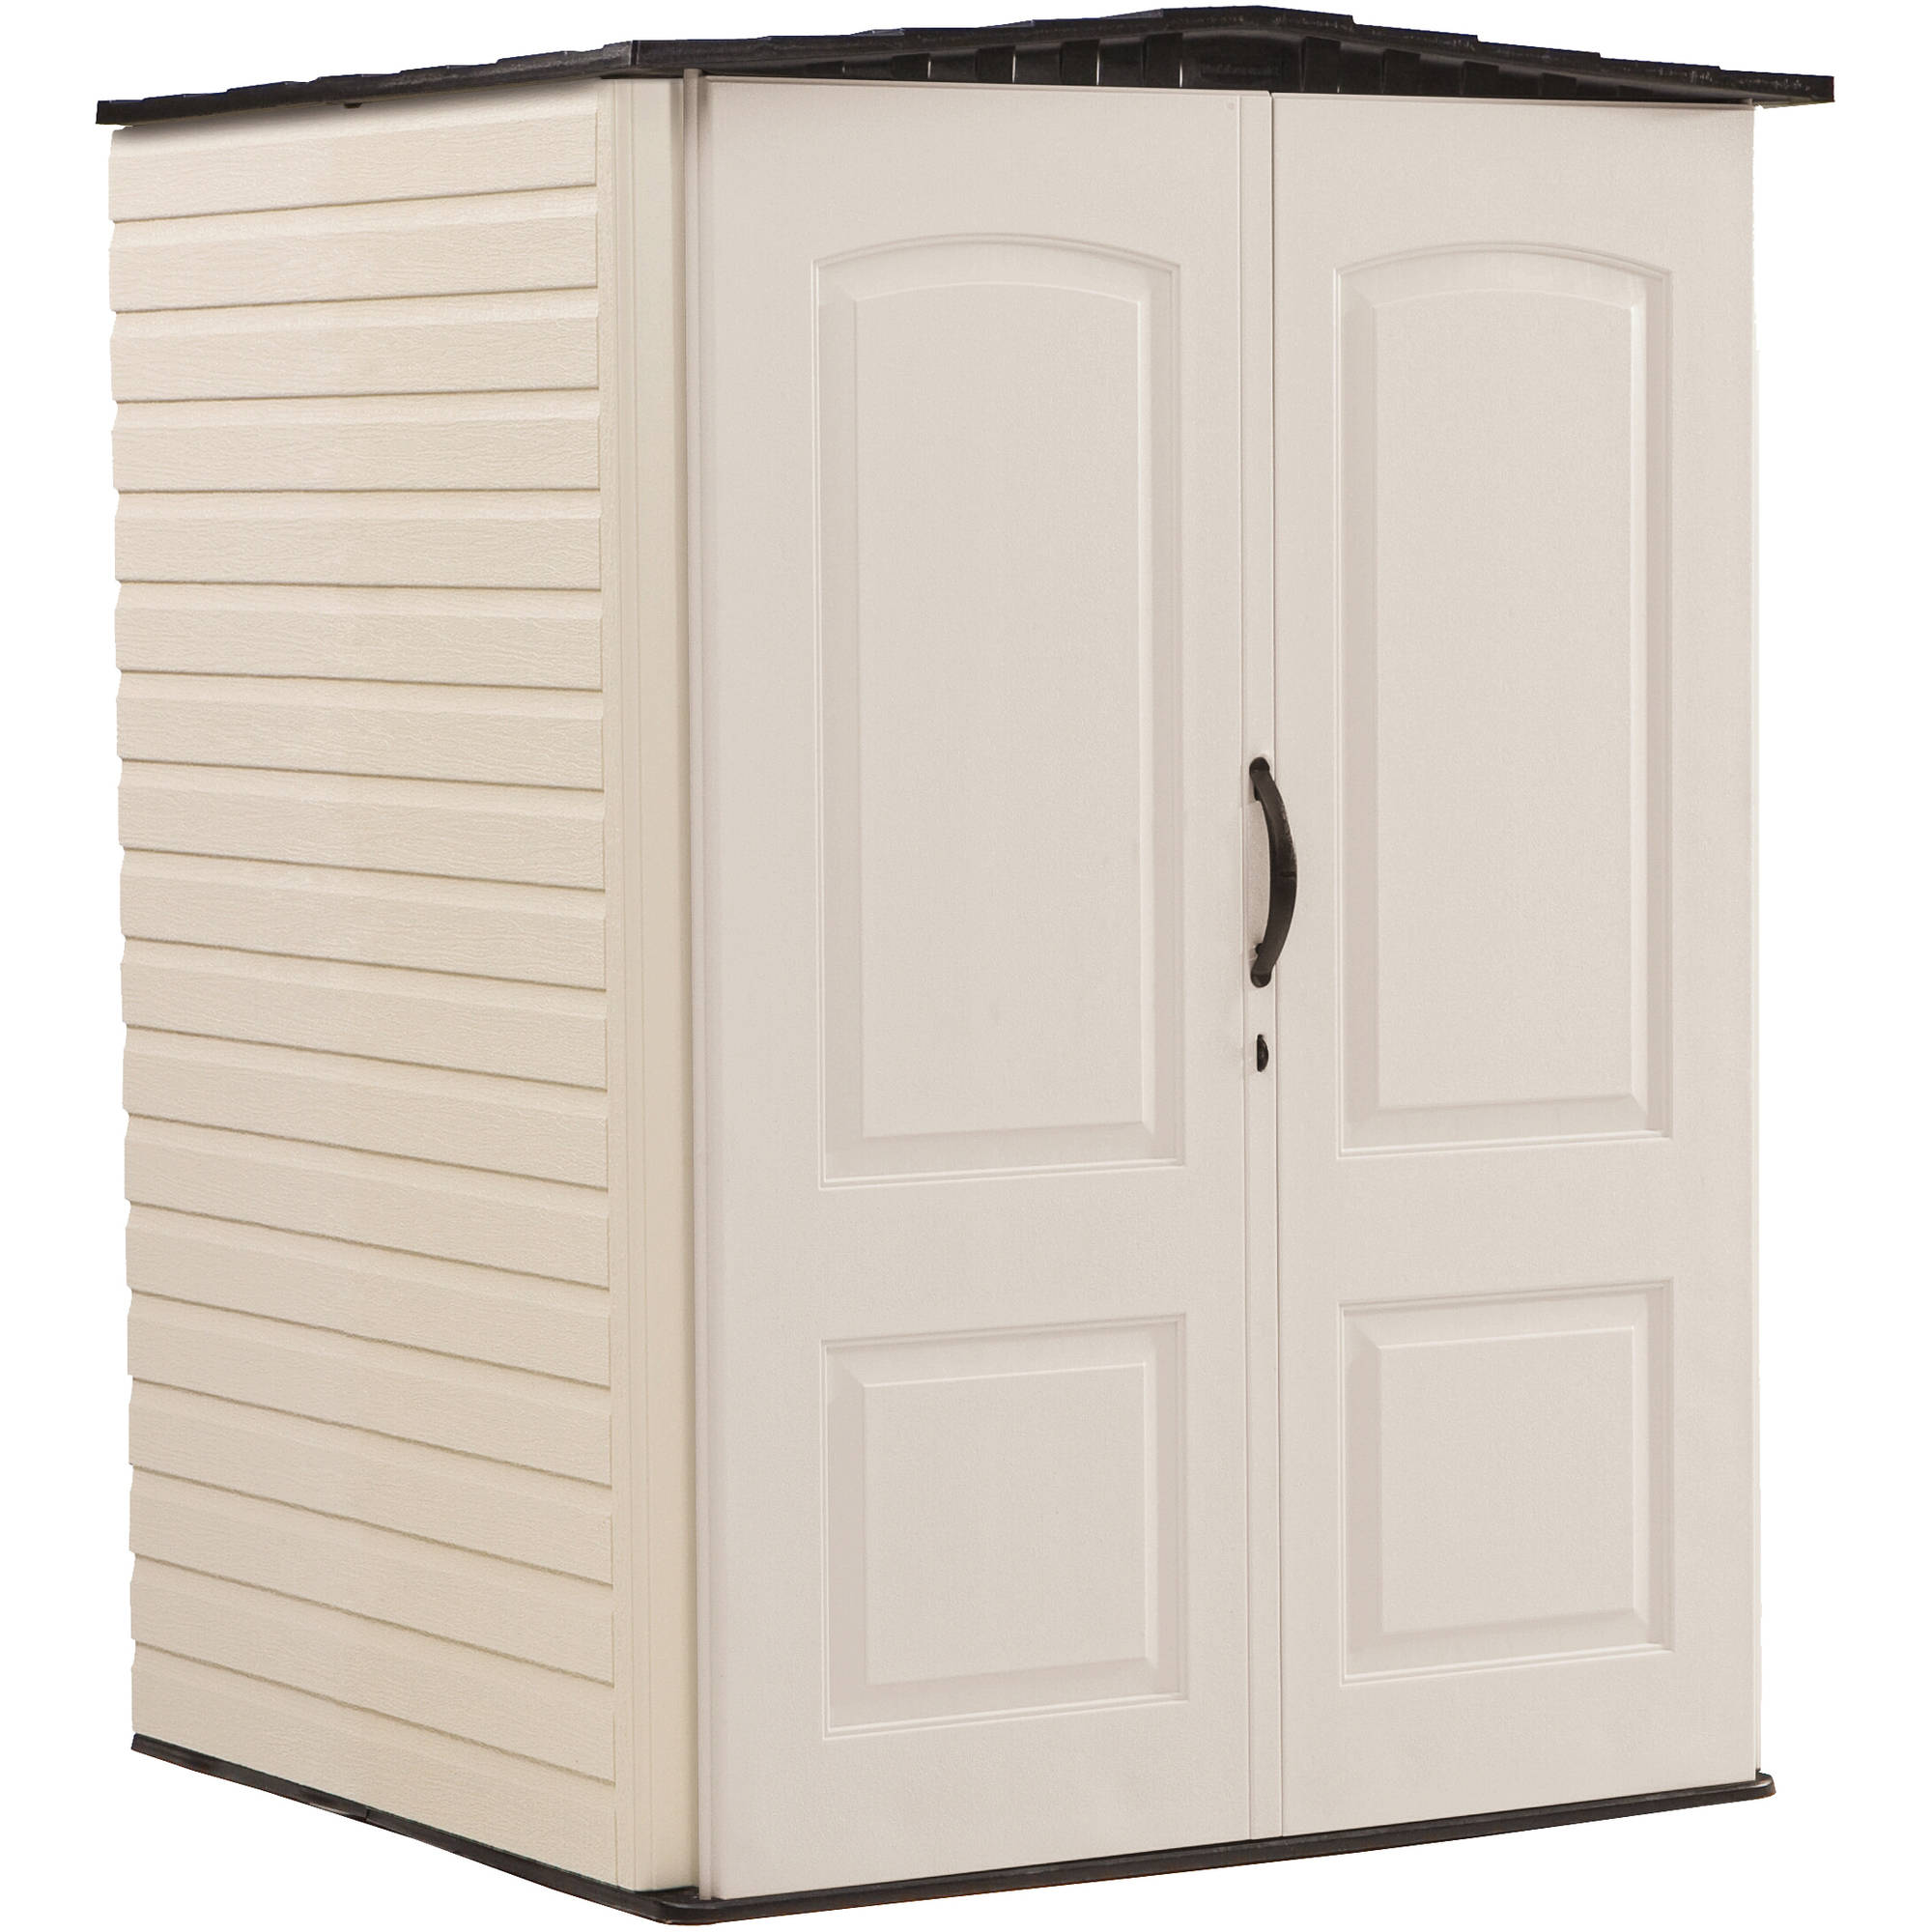 Garden Sheds At Sears rubbermaid sheds